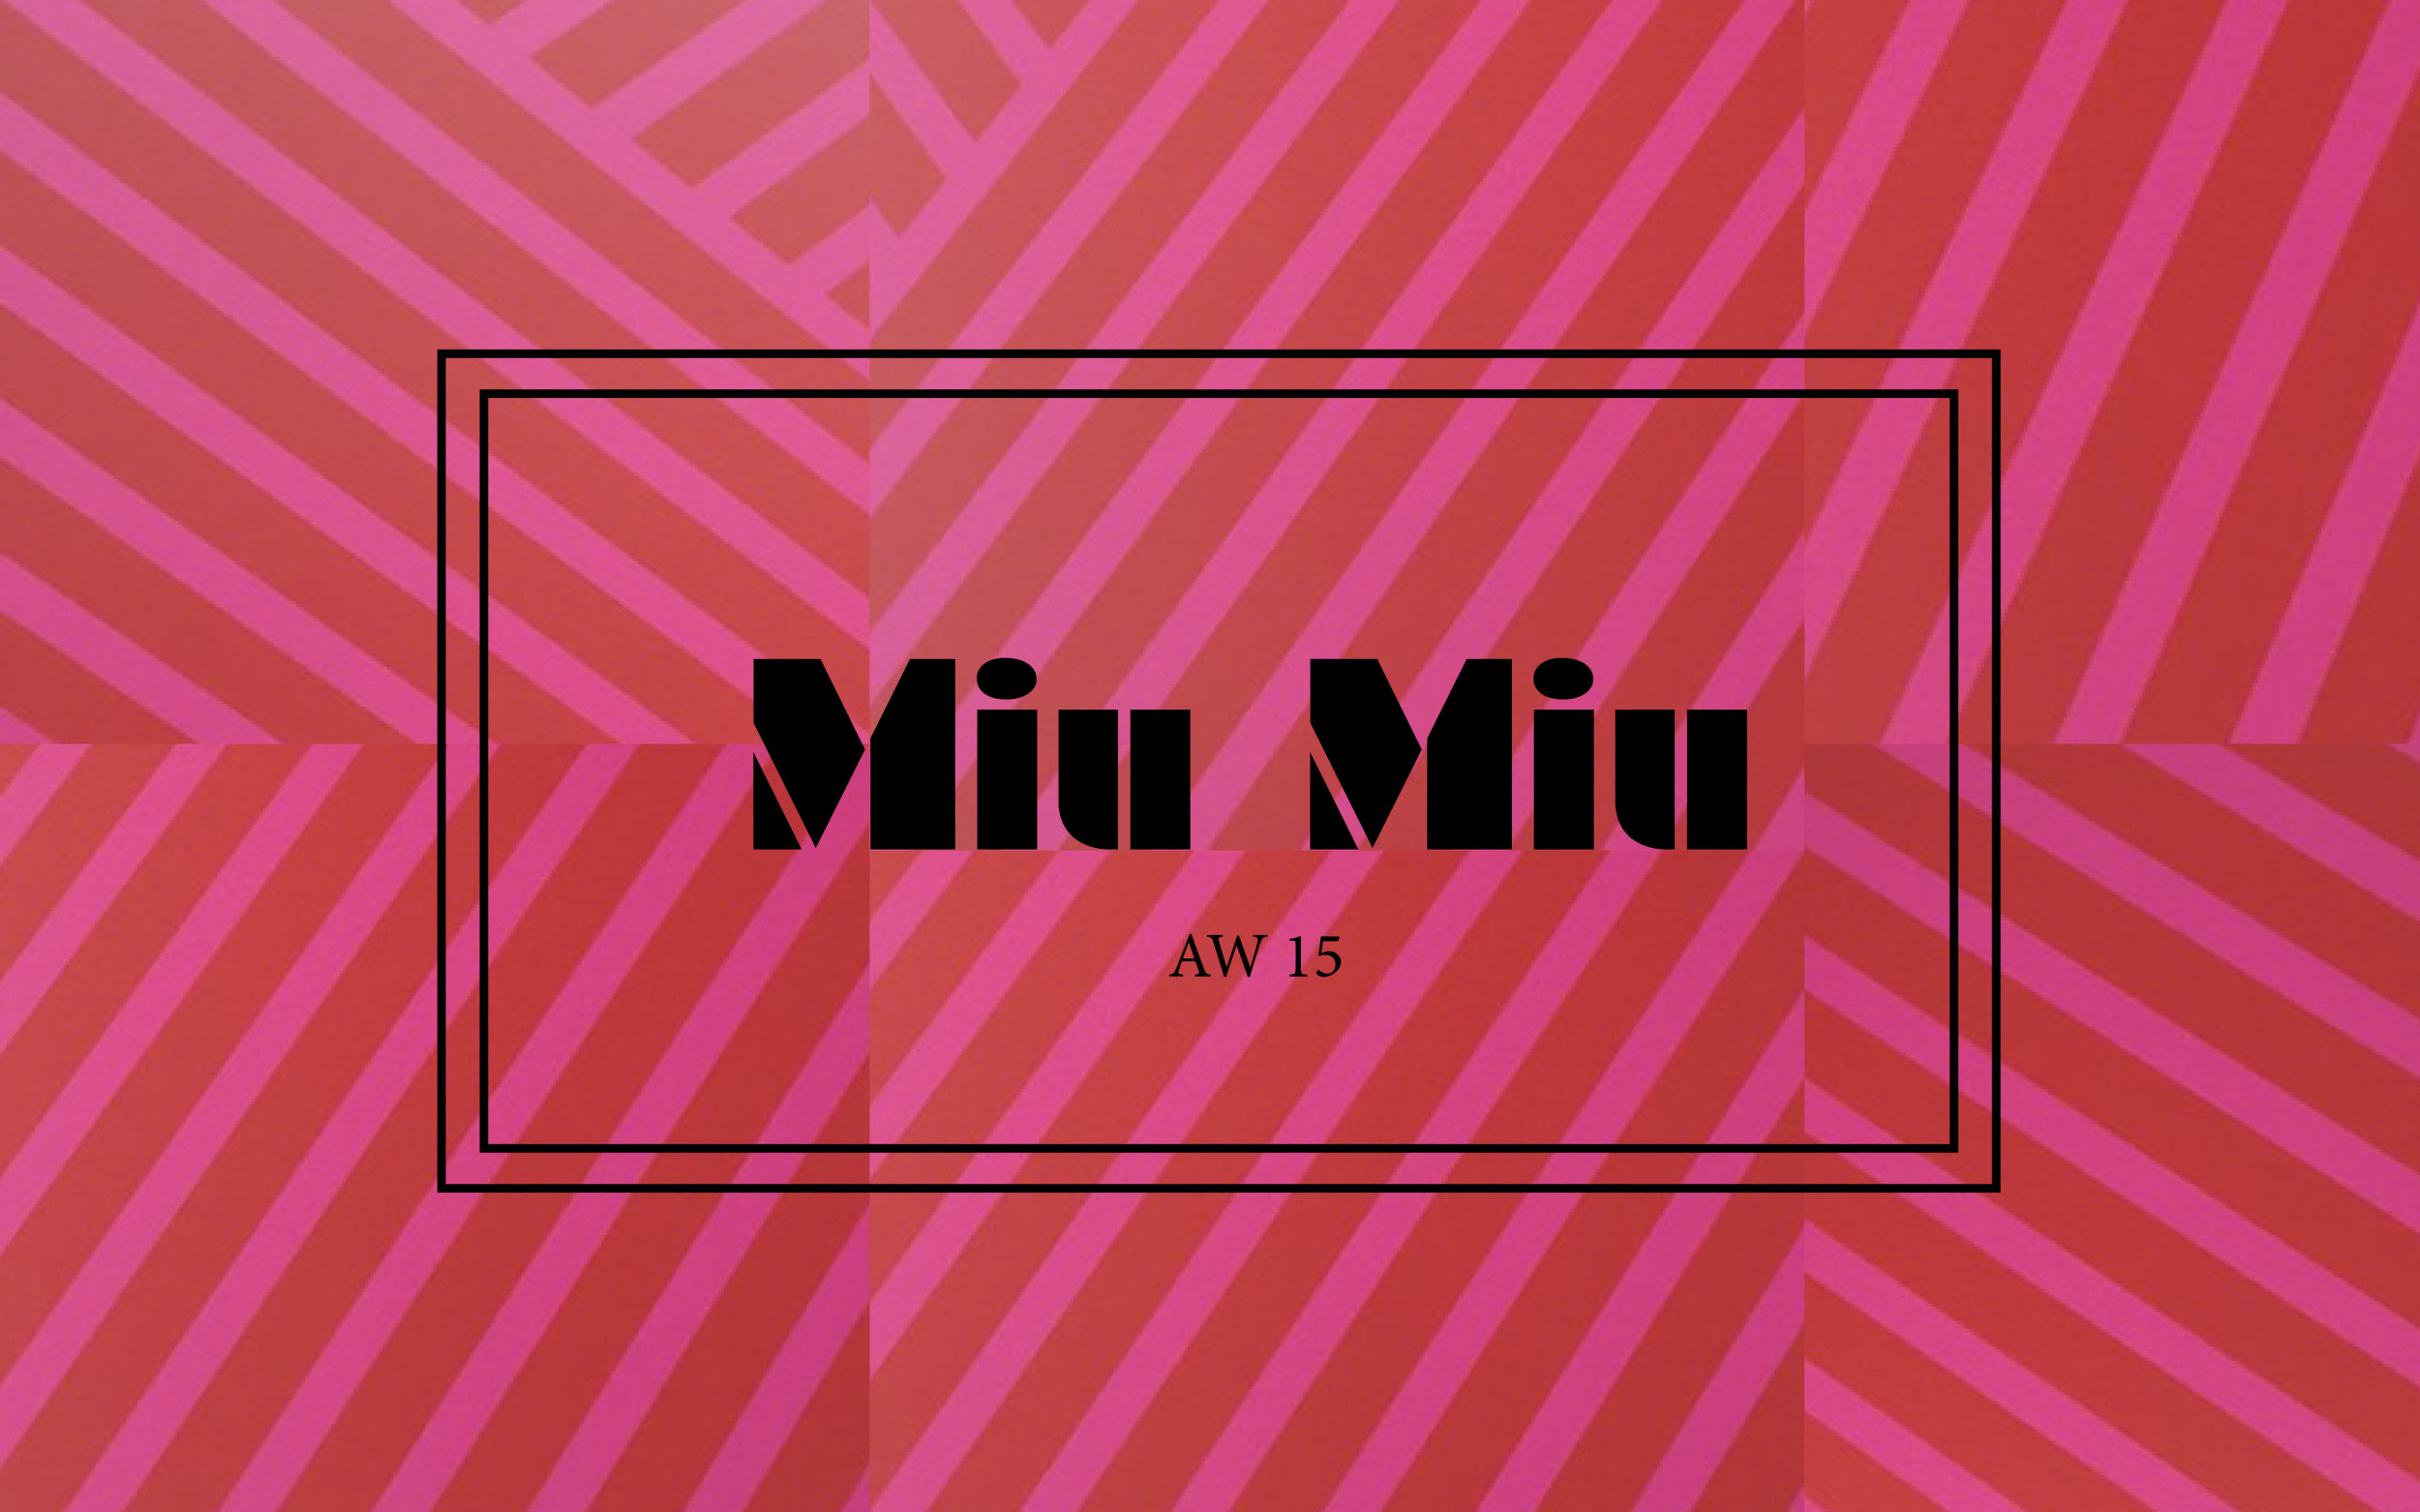 Miu Miu LFW DESIGNER SHOWs AW15